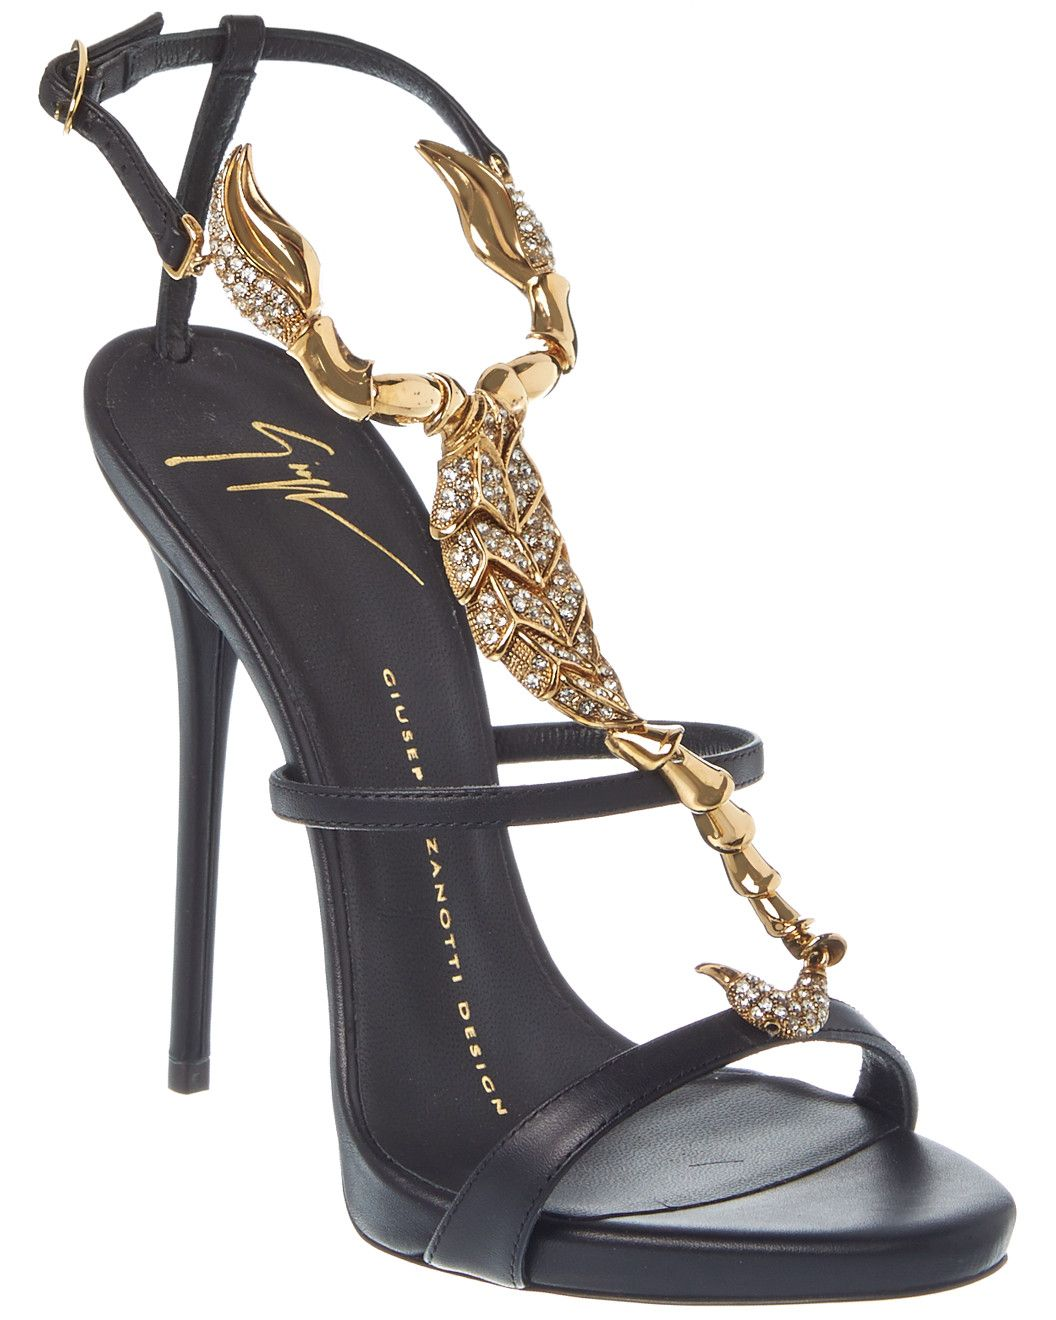 Spotted this Giuseppe Zanotti Leather Sandal on Rue La La. Shop (quickly!).